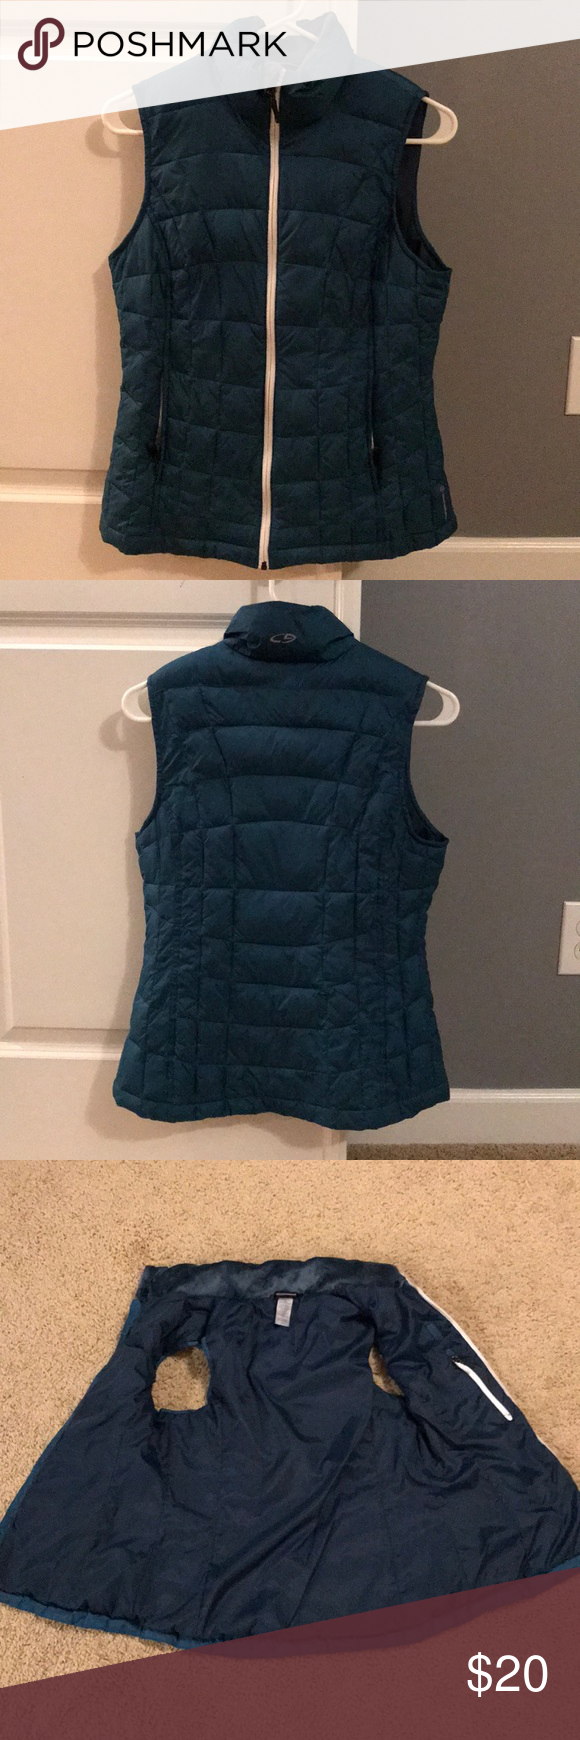 Champion Puffer Athletic Running Down Vest Down vest